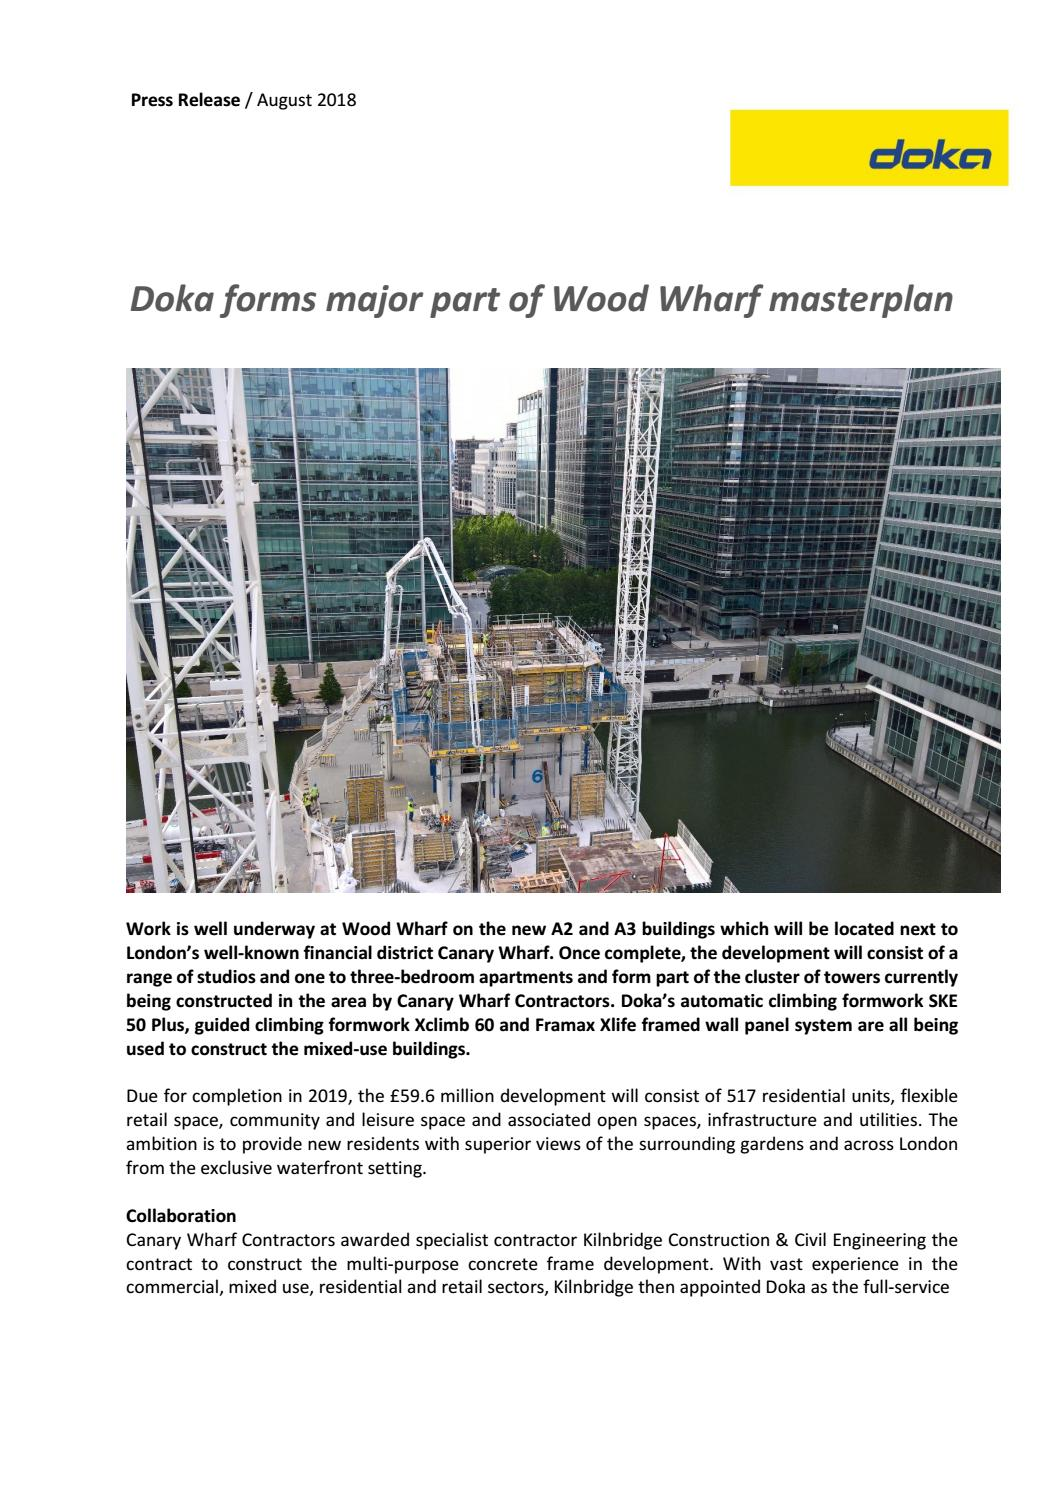 Doka forms major part of wood wharf masterplan by Doka - issuu